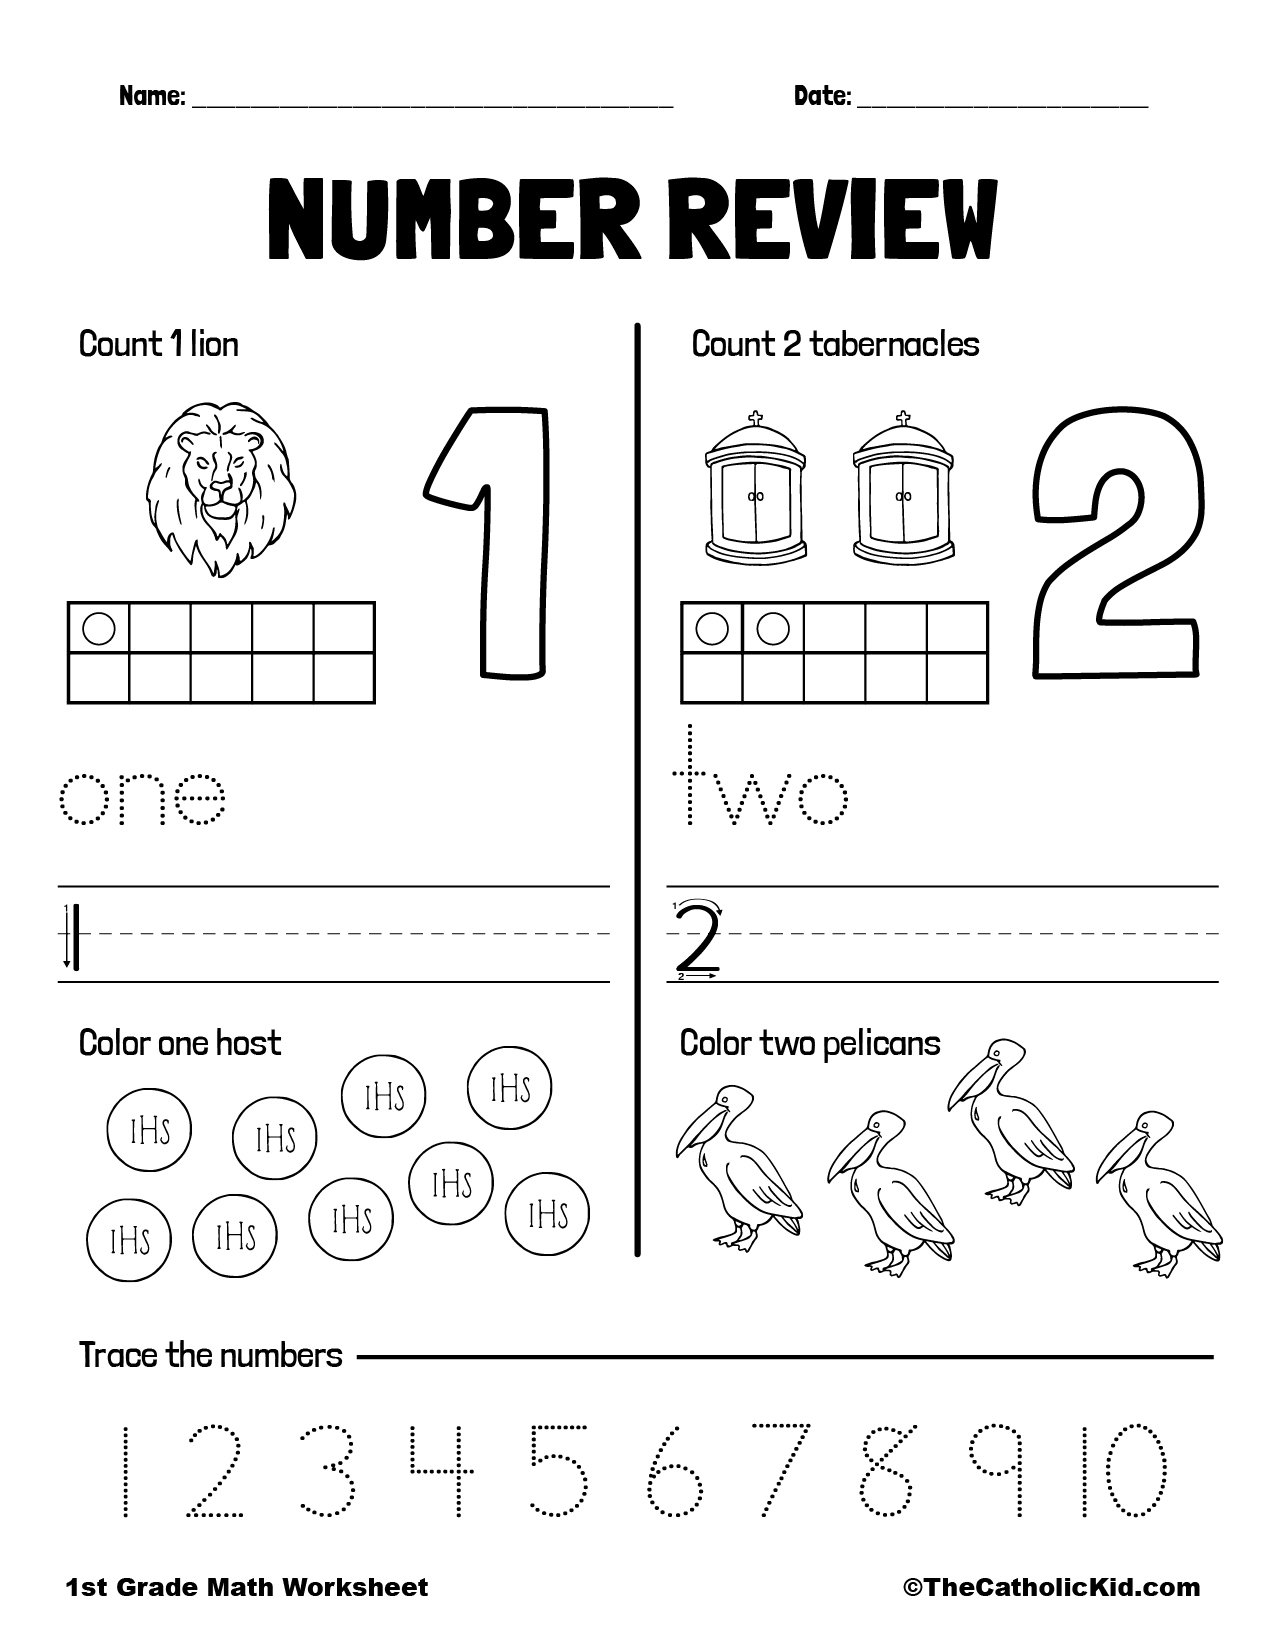 Counting Review Numbers 1 and 2 - 1st Grade Math Worksheet Catholic